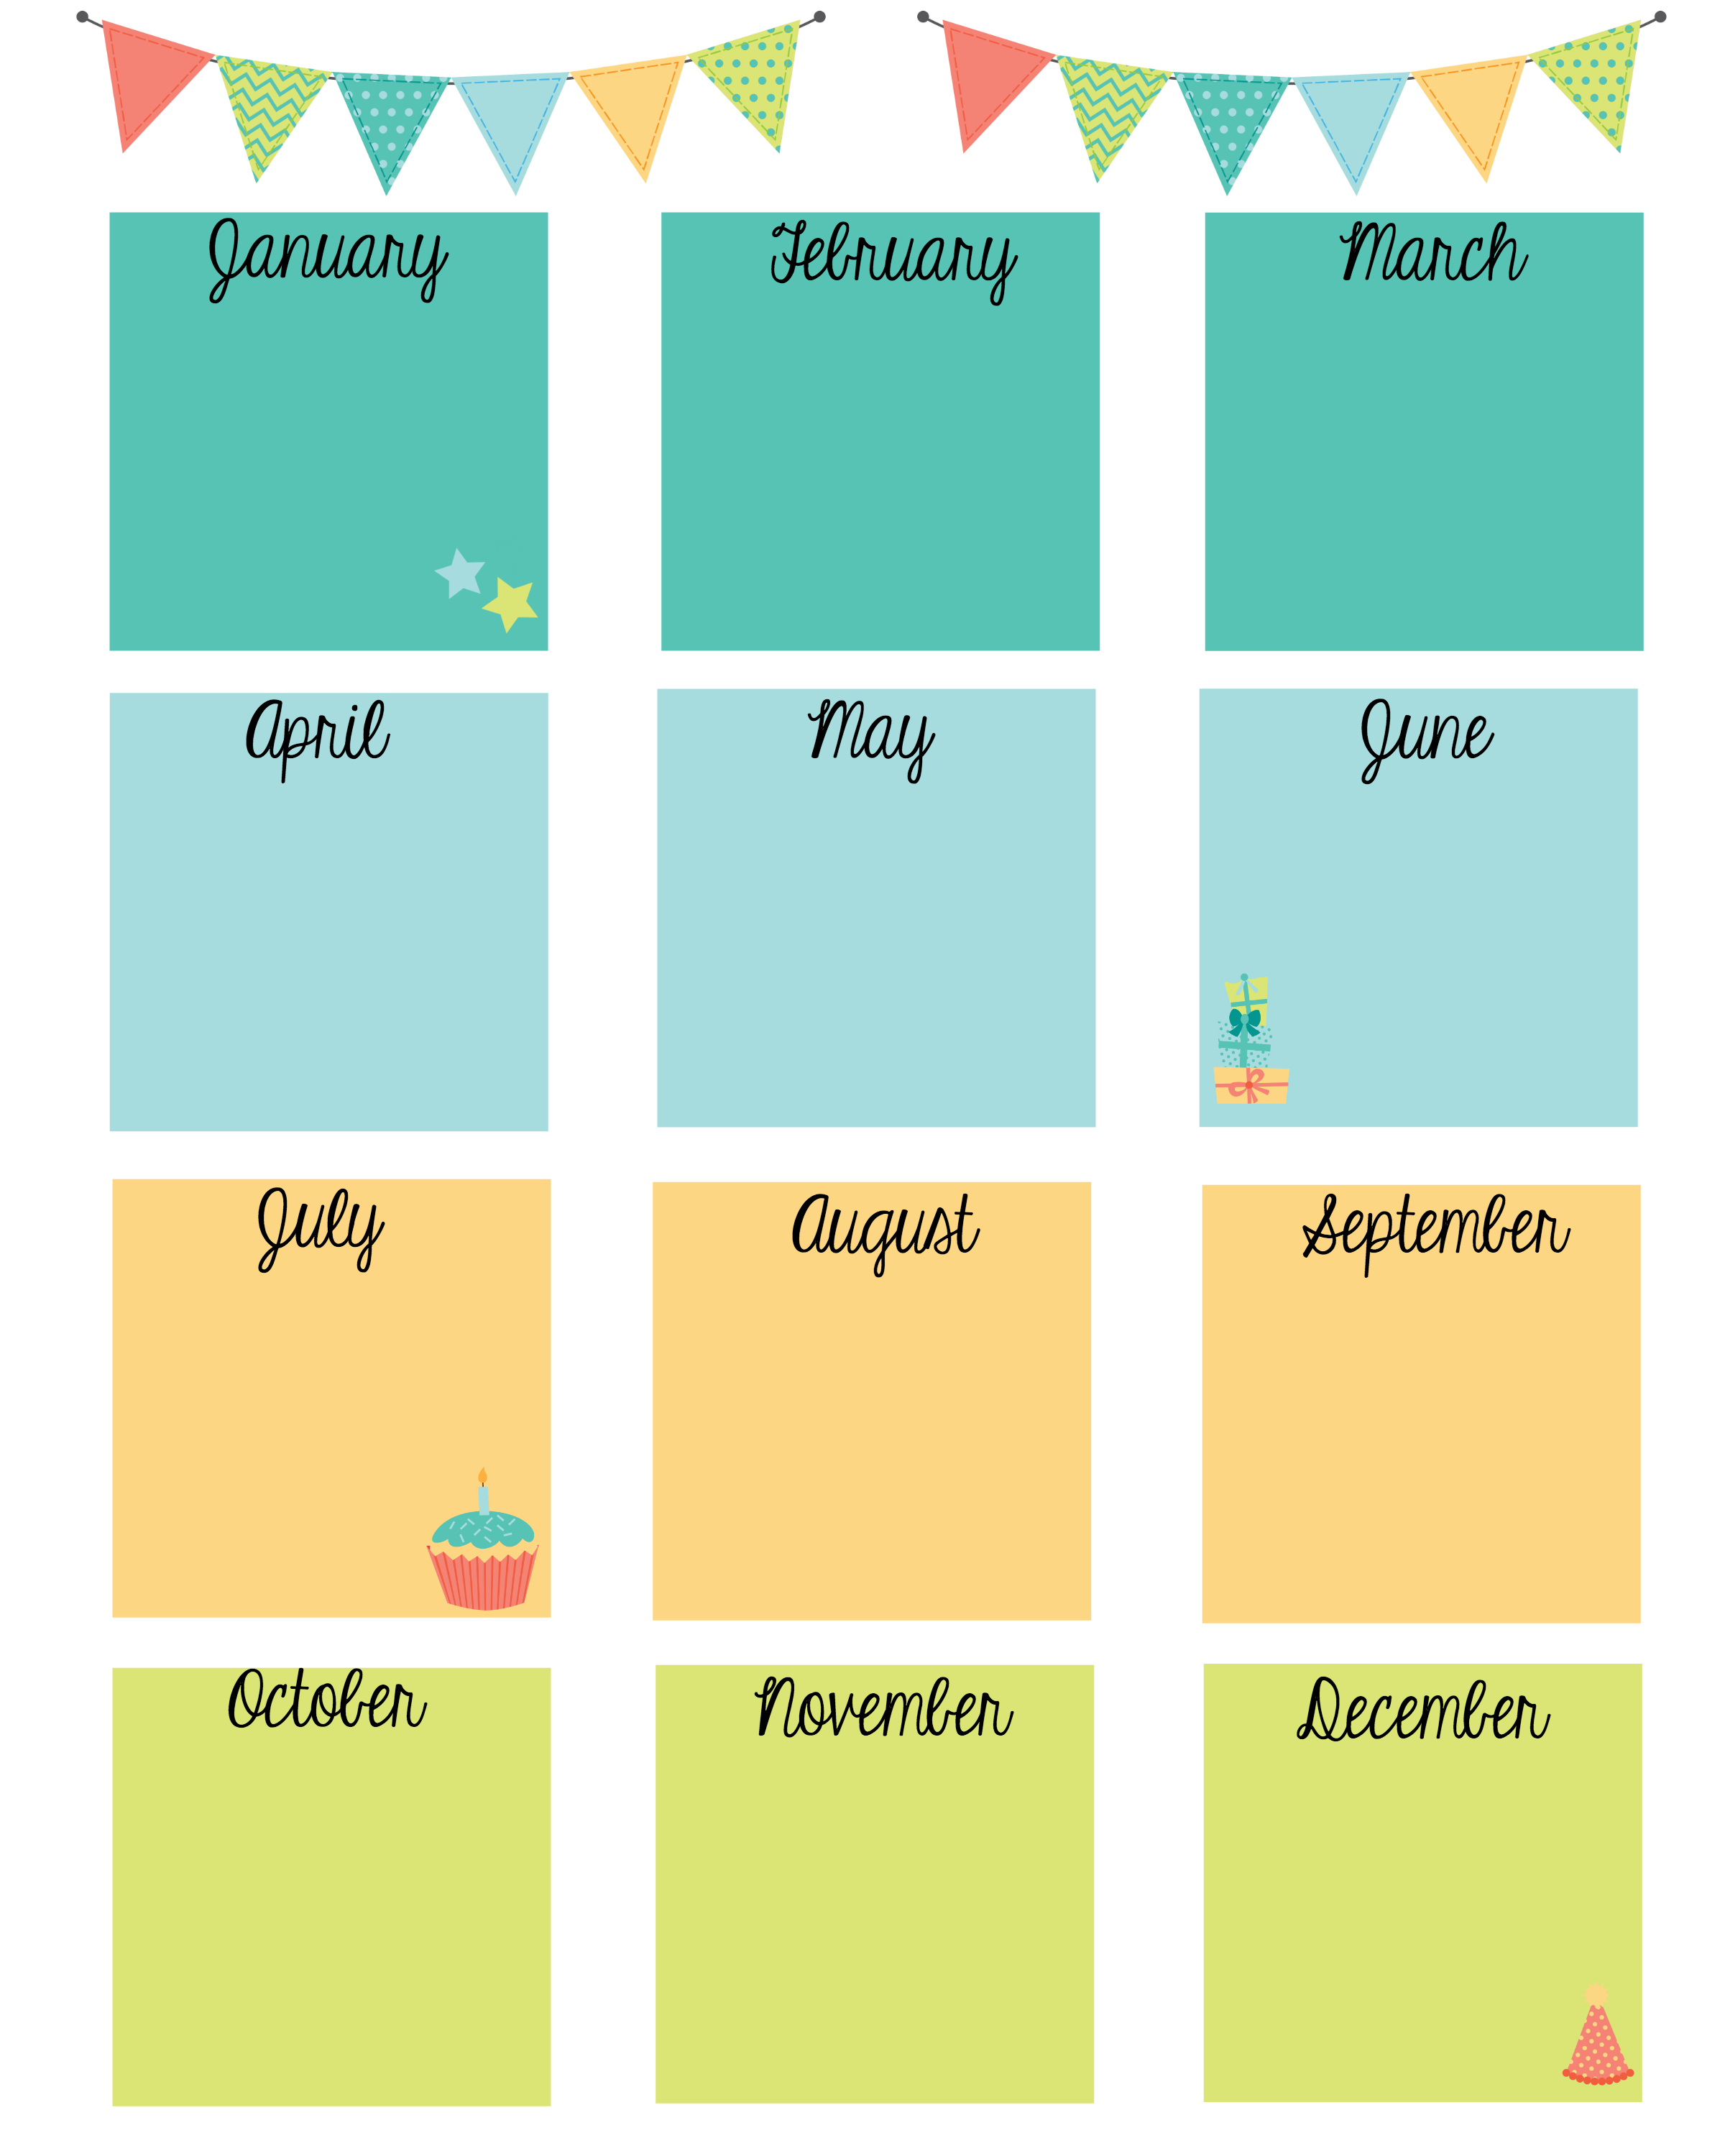 Keep In Touch With Friends With A Birthday Calendar   Calendars inside Monthly Birthday Calendar Template